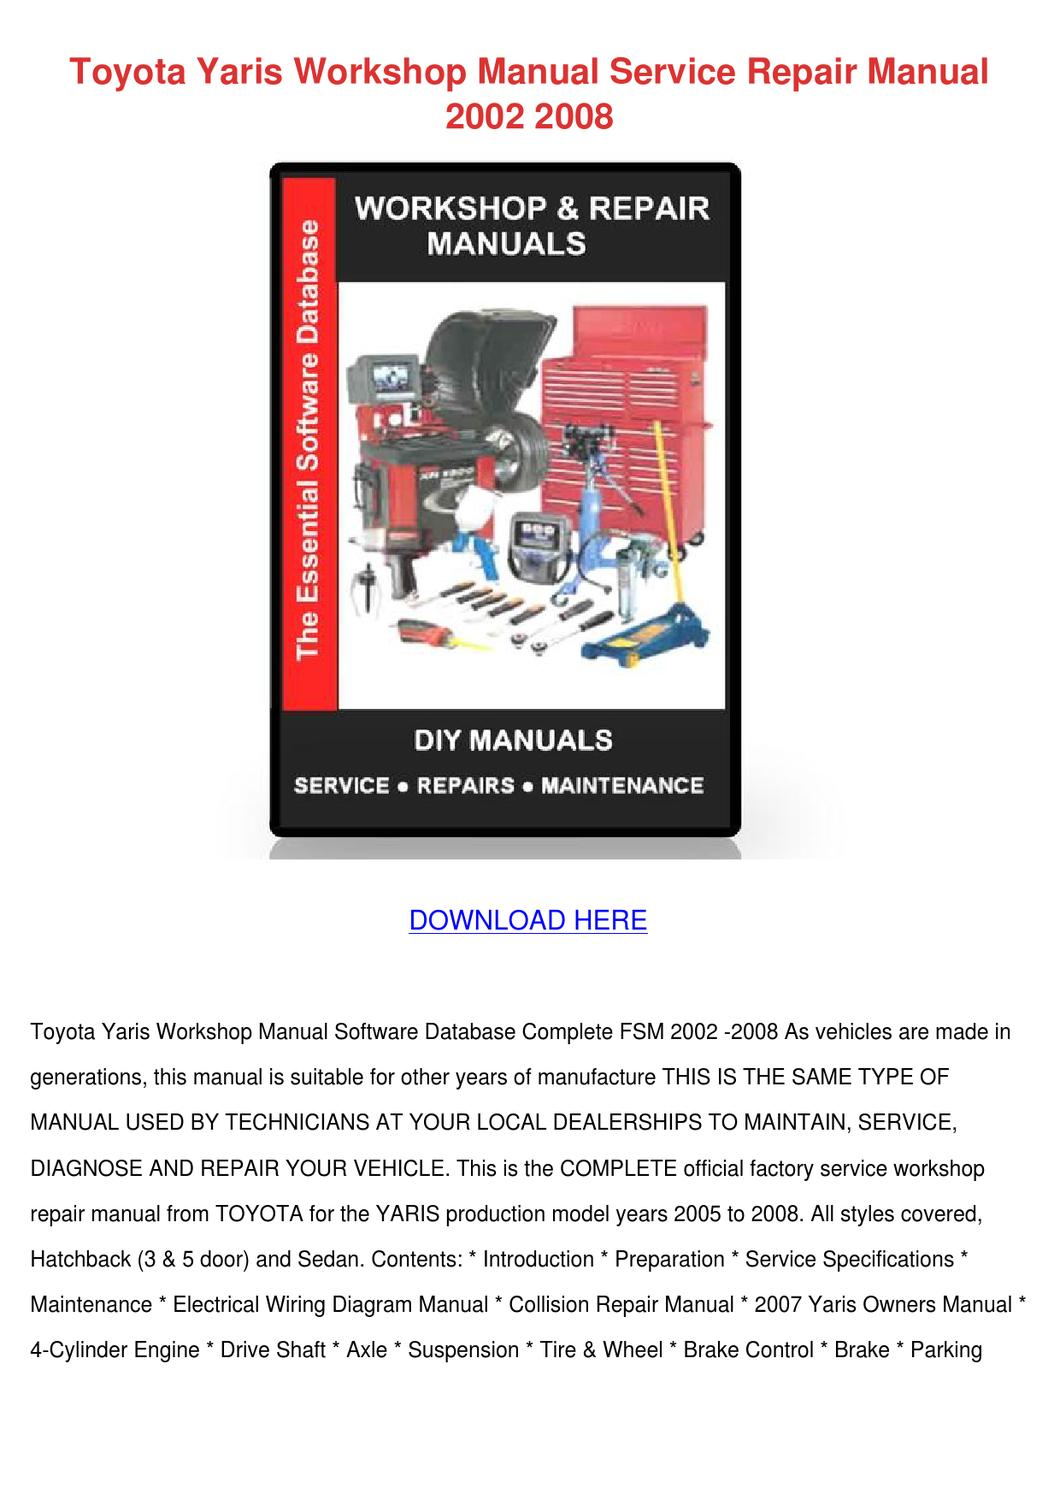 Toyota Yaris Workshop Manual Service Repair M by SusanneSingleton - issuu